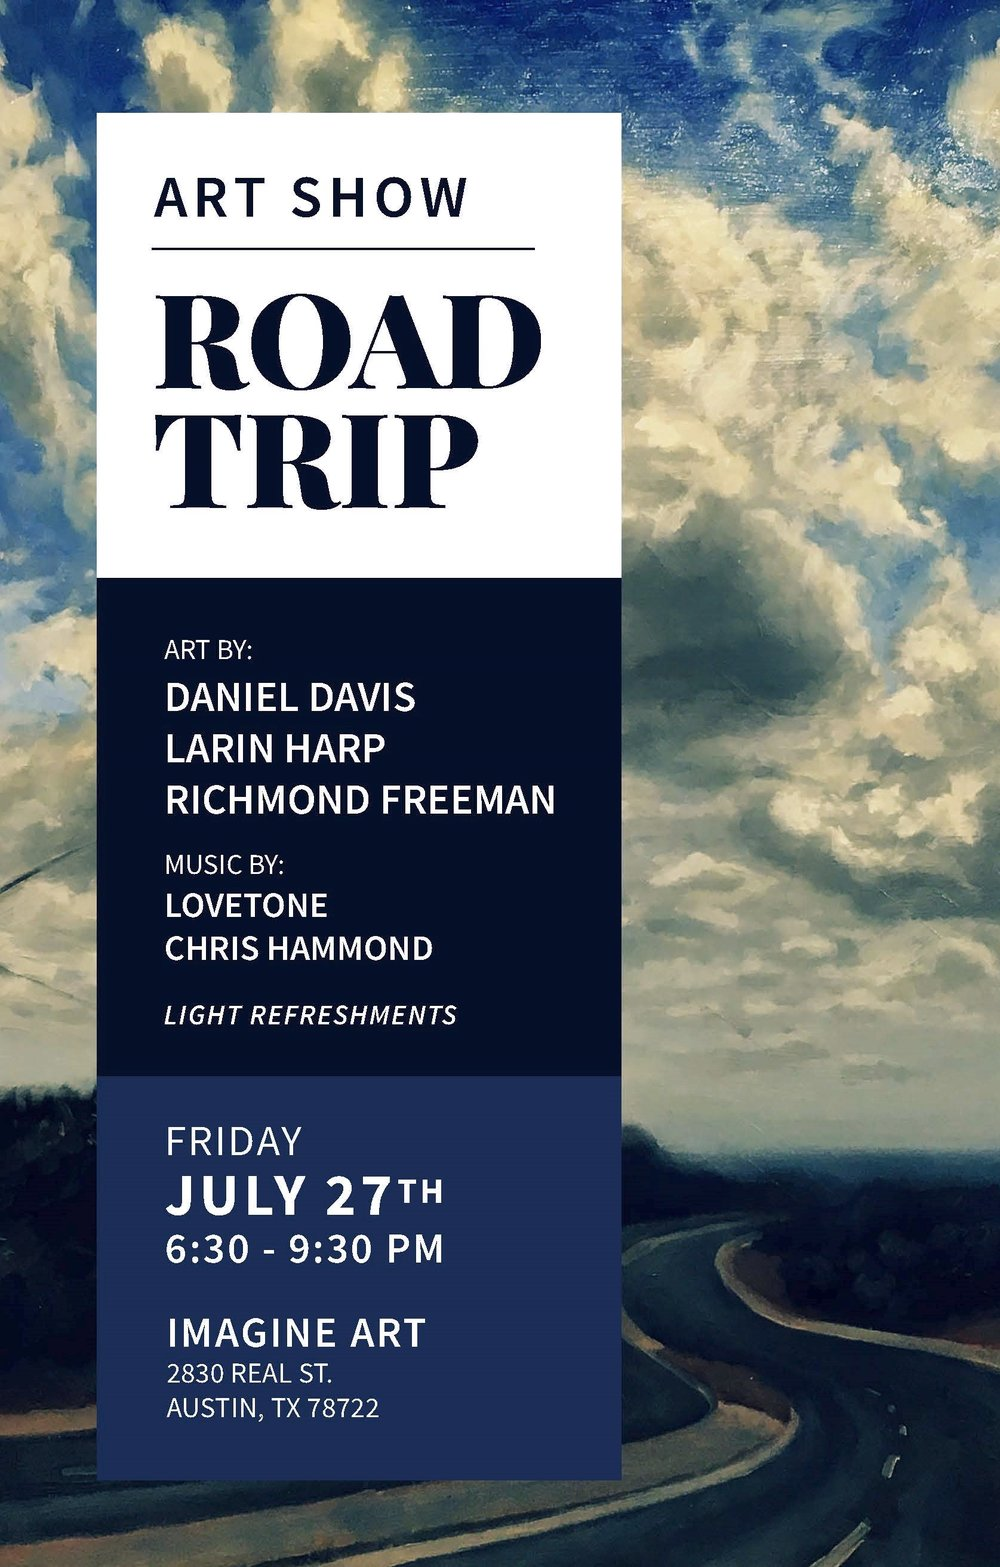 ART SHOW - ROAD TRIP sets off to capture and celebrate three different artists from our Imagine Art community, Larin Harp, Daniel Davis, and Richmond Freeman. Charismatic cars and trucks in clay by prolific artist Larin Harp set the pace for adventure, calling us to throw caution to the wind, and hit the open road. We travel from the congestion of urban dwelling and tall buildings in Daniel Davis' sophisticated city scapes into breathable vistas of nature – think: babbling brooks, cypress trees, open prairies, and hill country havens, offering pause, reflection, and respite. And what road trip wouldn't be complete with a photo or two to document the sweet expanse of a sunset or a moment in time, and in ourselves, where all seemed right, possibility abounding? Luckily Richmond Freeman provides us with cameras of clay to click that magic moment, a tangible token of our freedom combined with the spirit of the open road.We hope you enjoy this exhibit and take your own trip ... whether down the highway or simply within yourself.